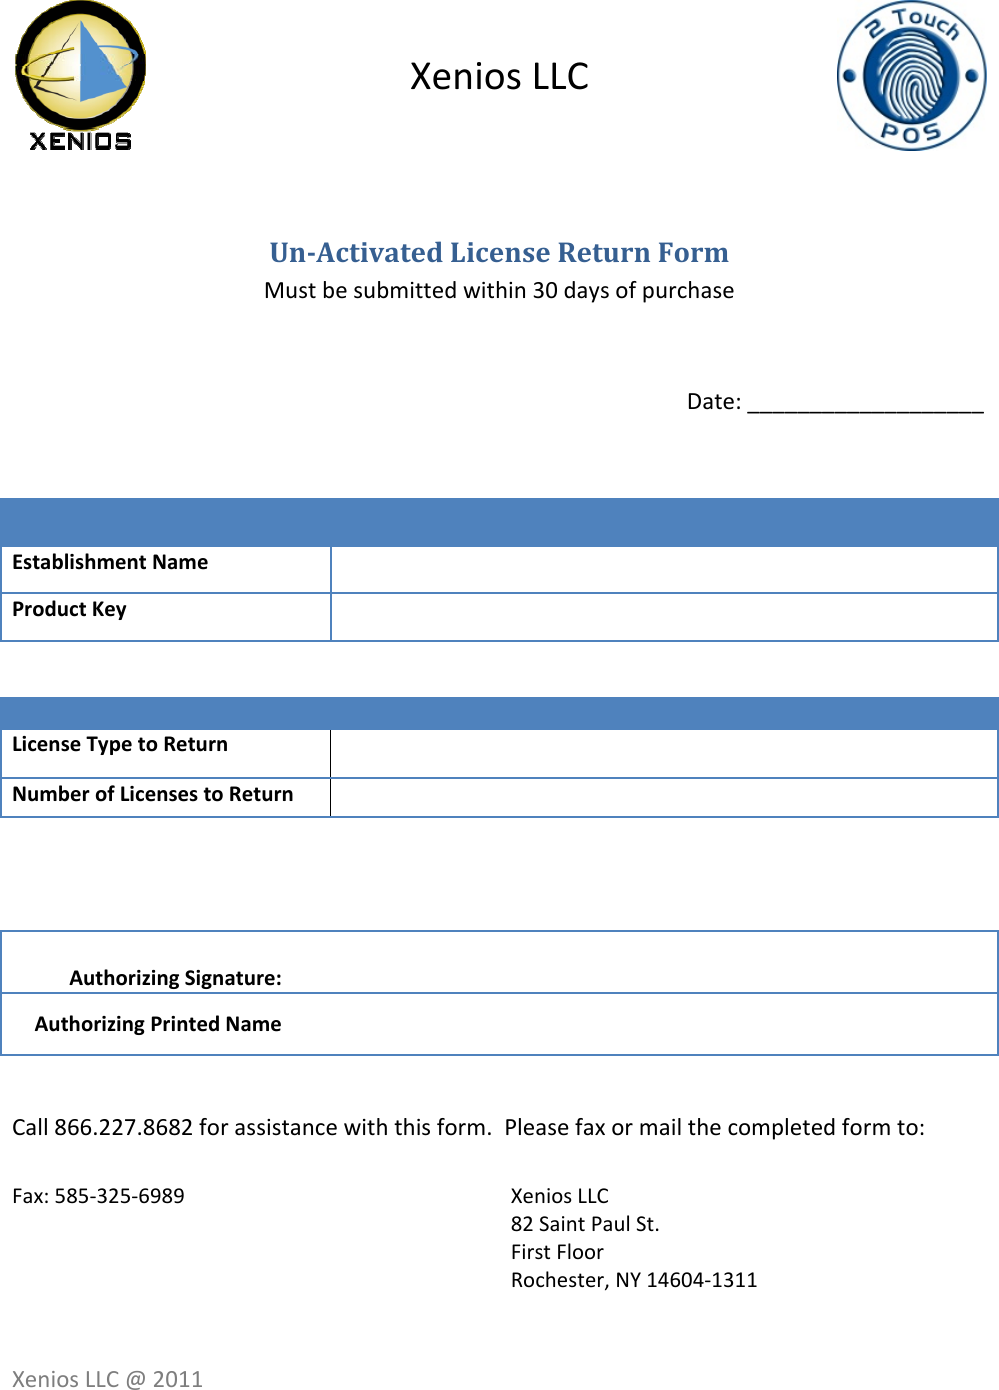 Page 1 of 2 - Un-Activated License Return Form